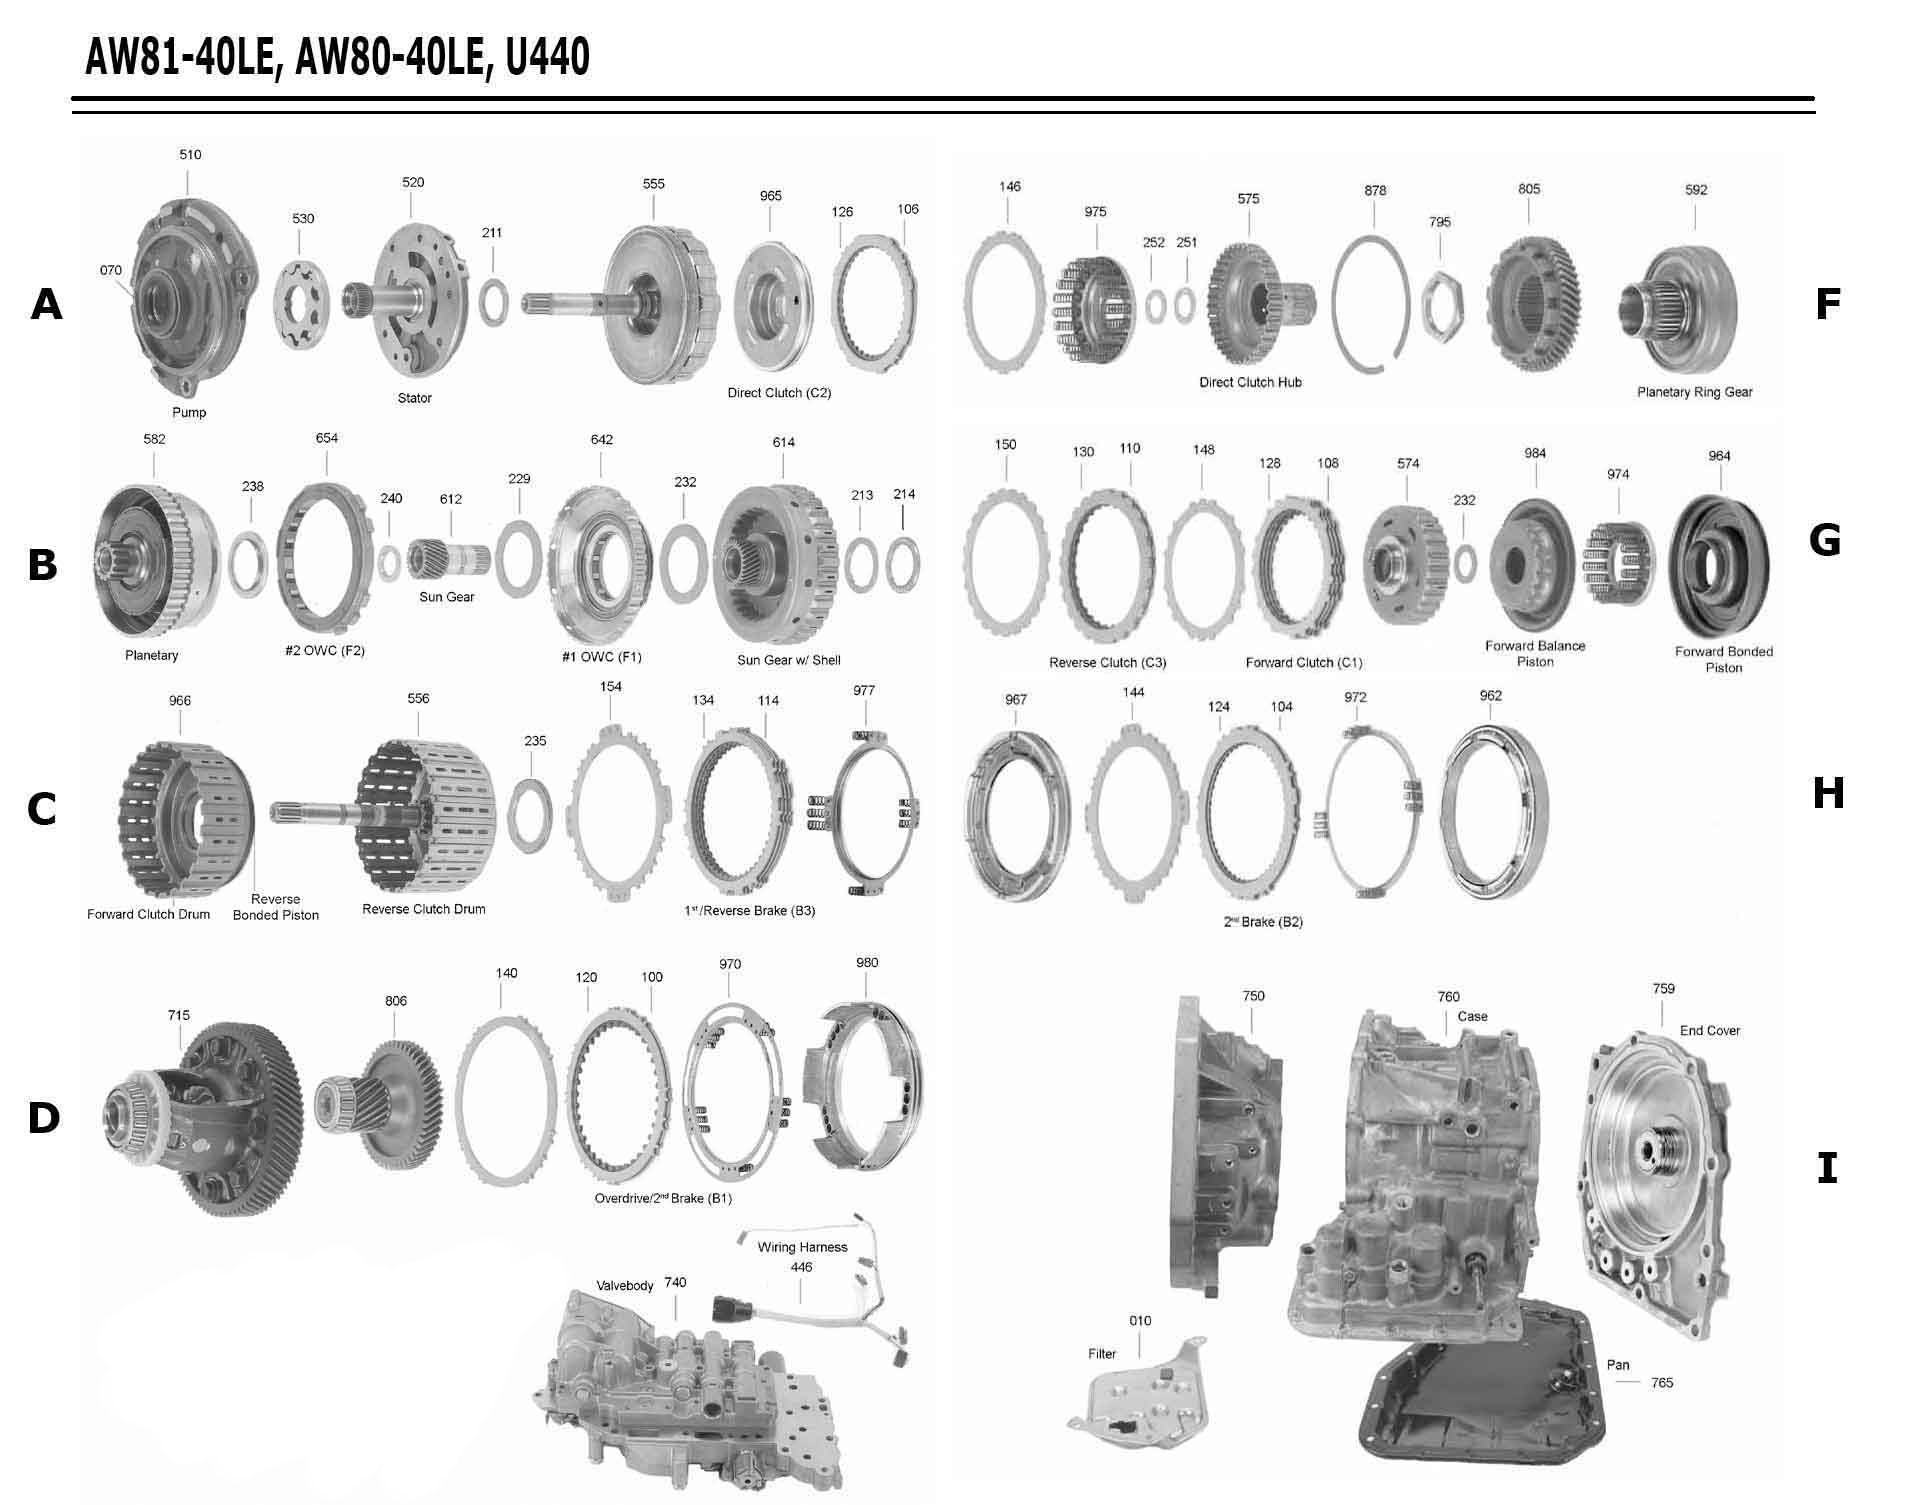 Transmission Repair Manuals U440e Aw80 81 40